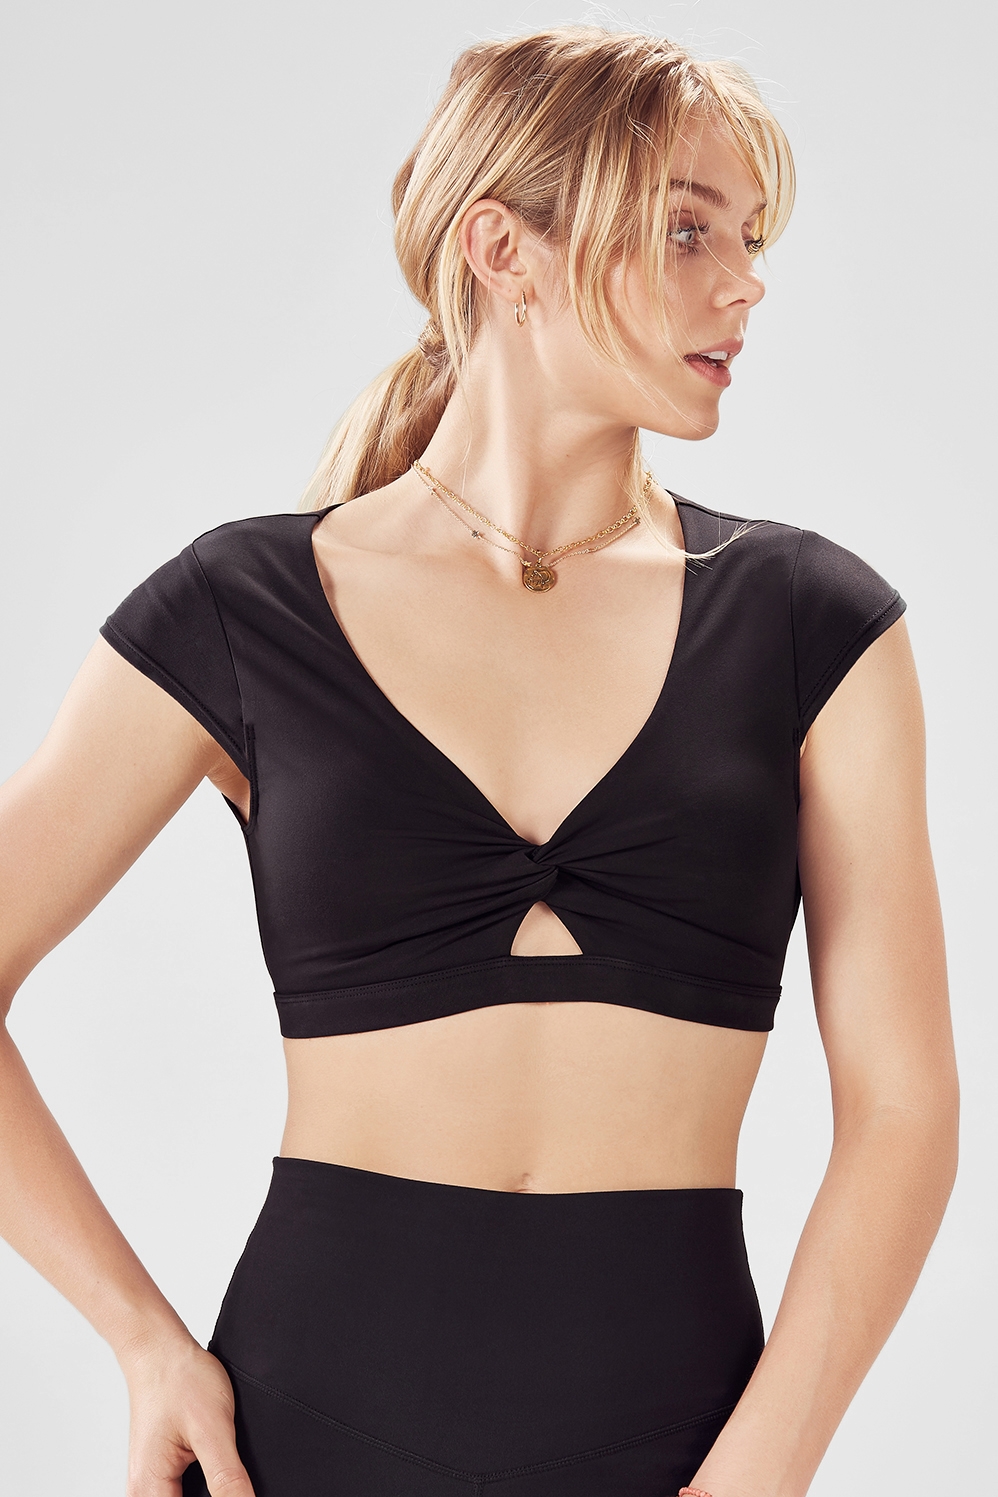 9716ffd3cd478 Sports Bra Size Chart Fabletics - Photos Chart In The Word